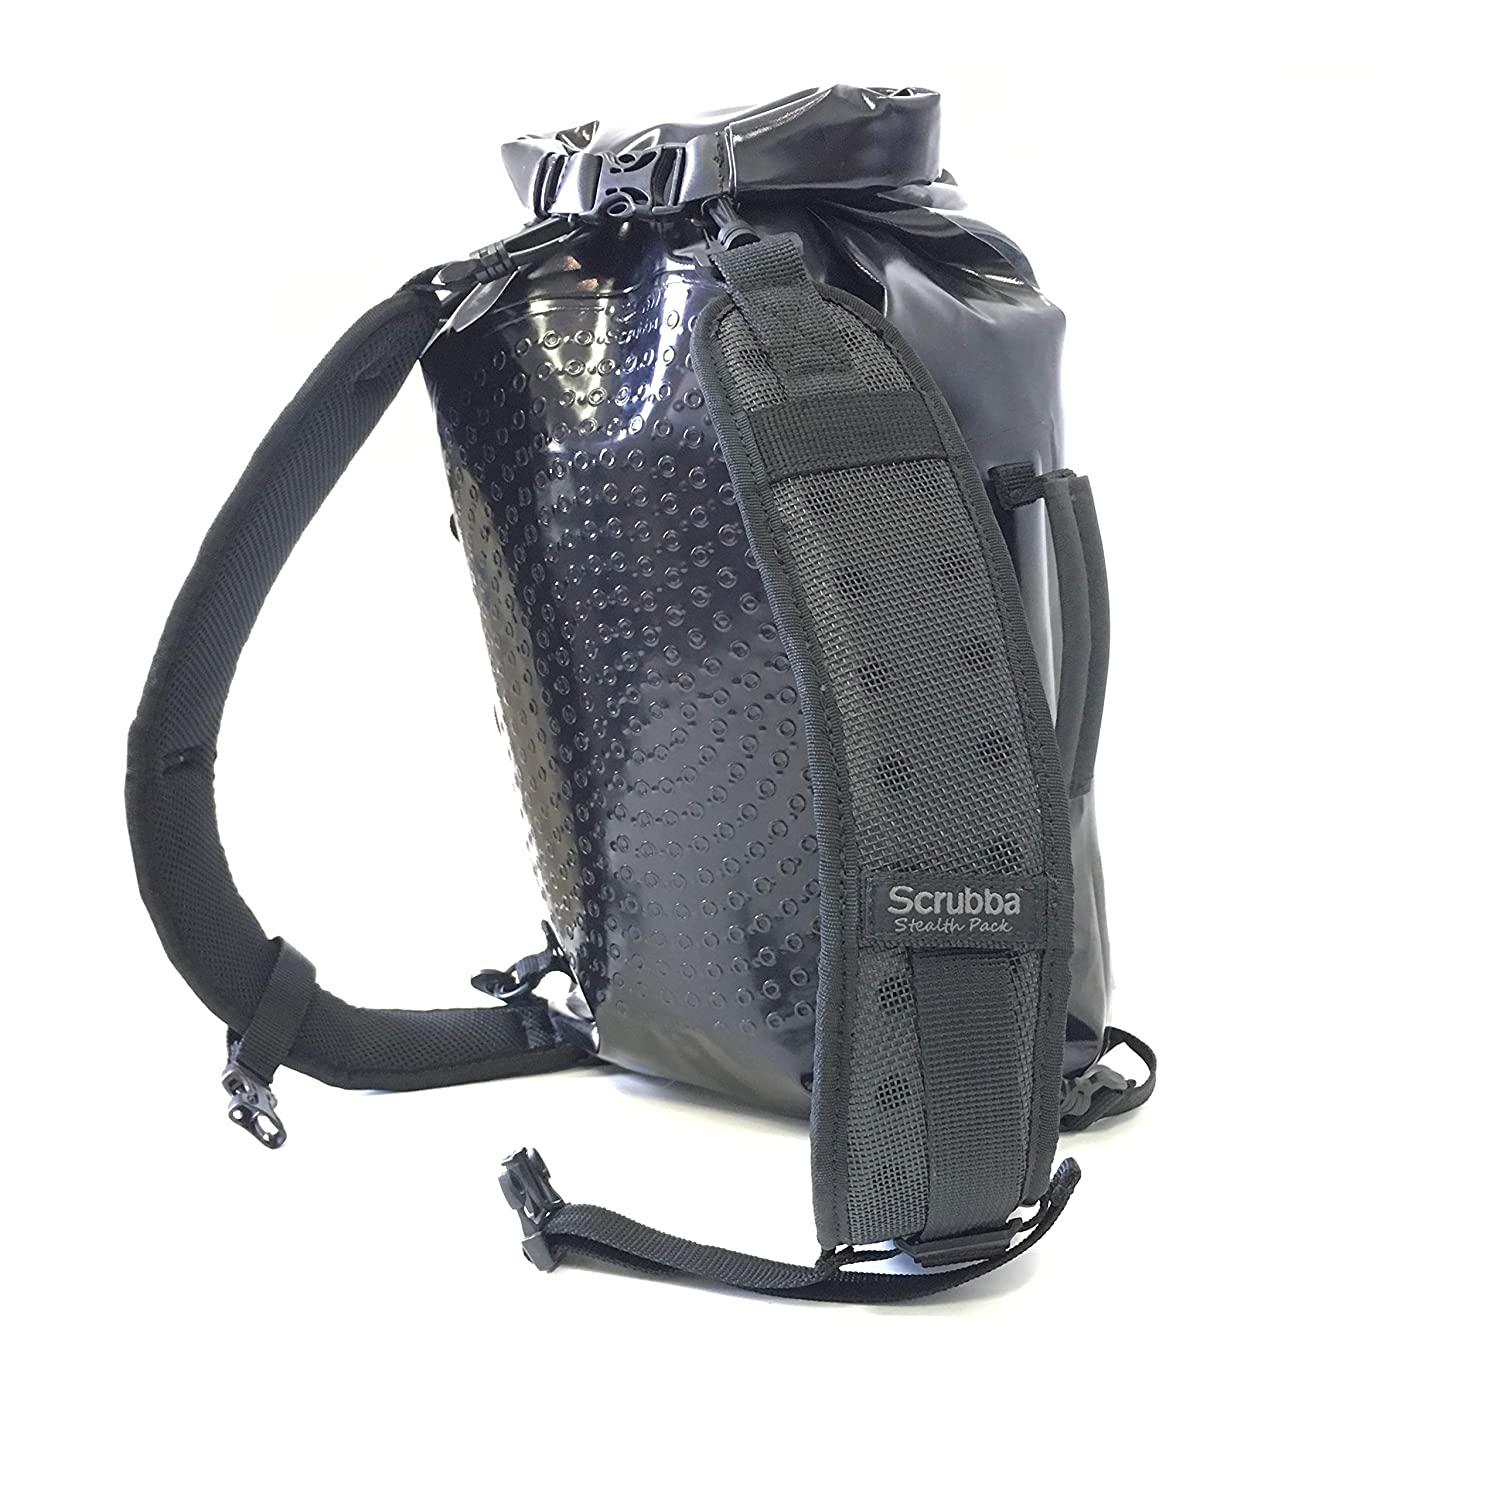 Portable Washing Machine and Camp Shower Mixte Adulte Scrubba STEALTHP-001 Pack Dicr/èt-Waterproof Backpack Combination Noir